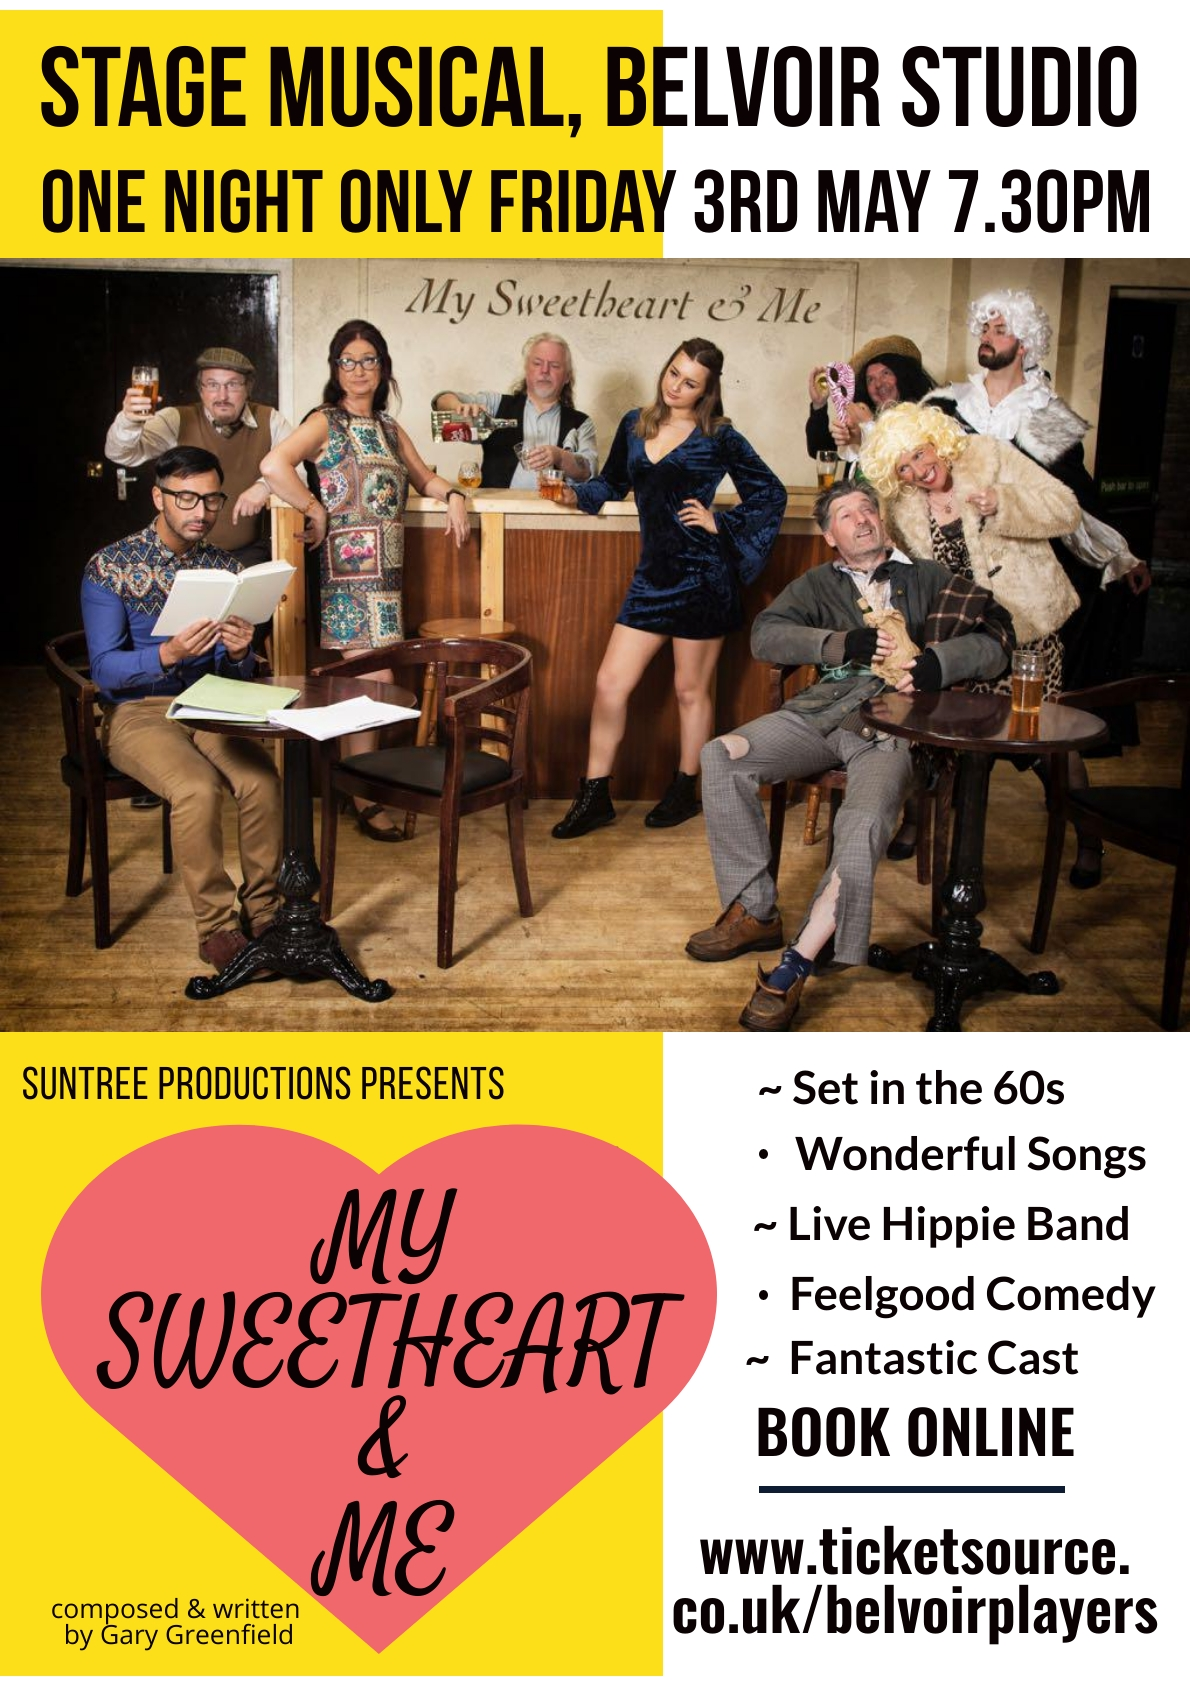 My Sweetheart & Me. A light-hearted, nostalgic musical.